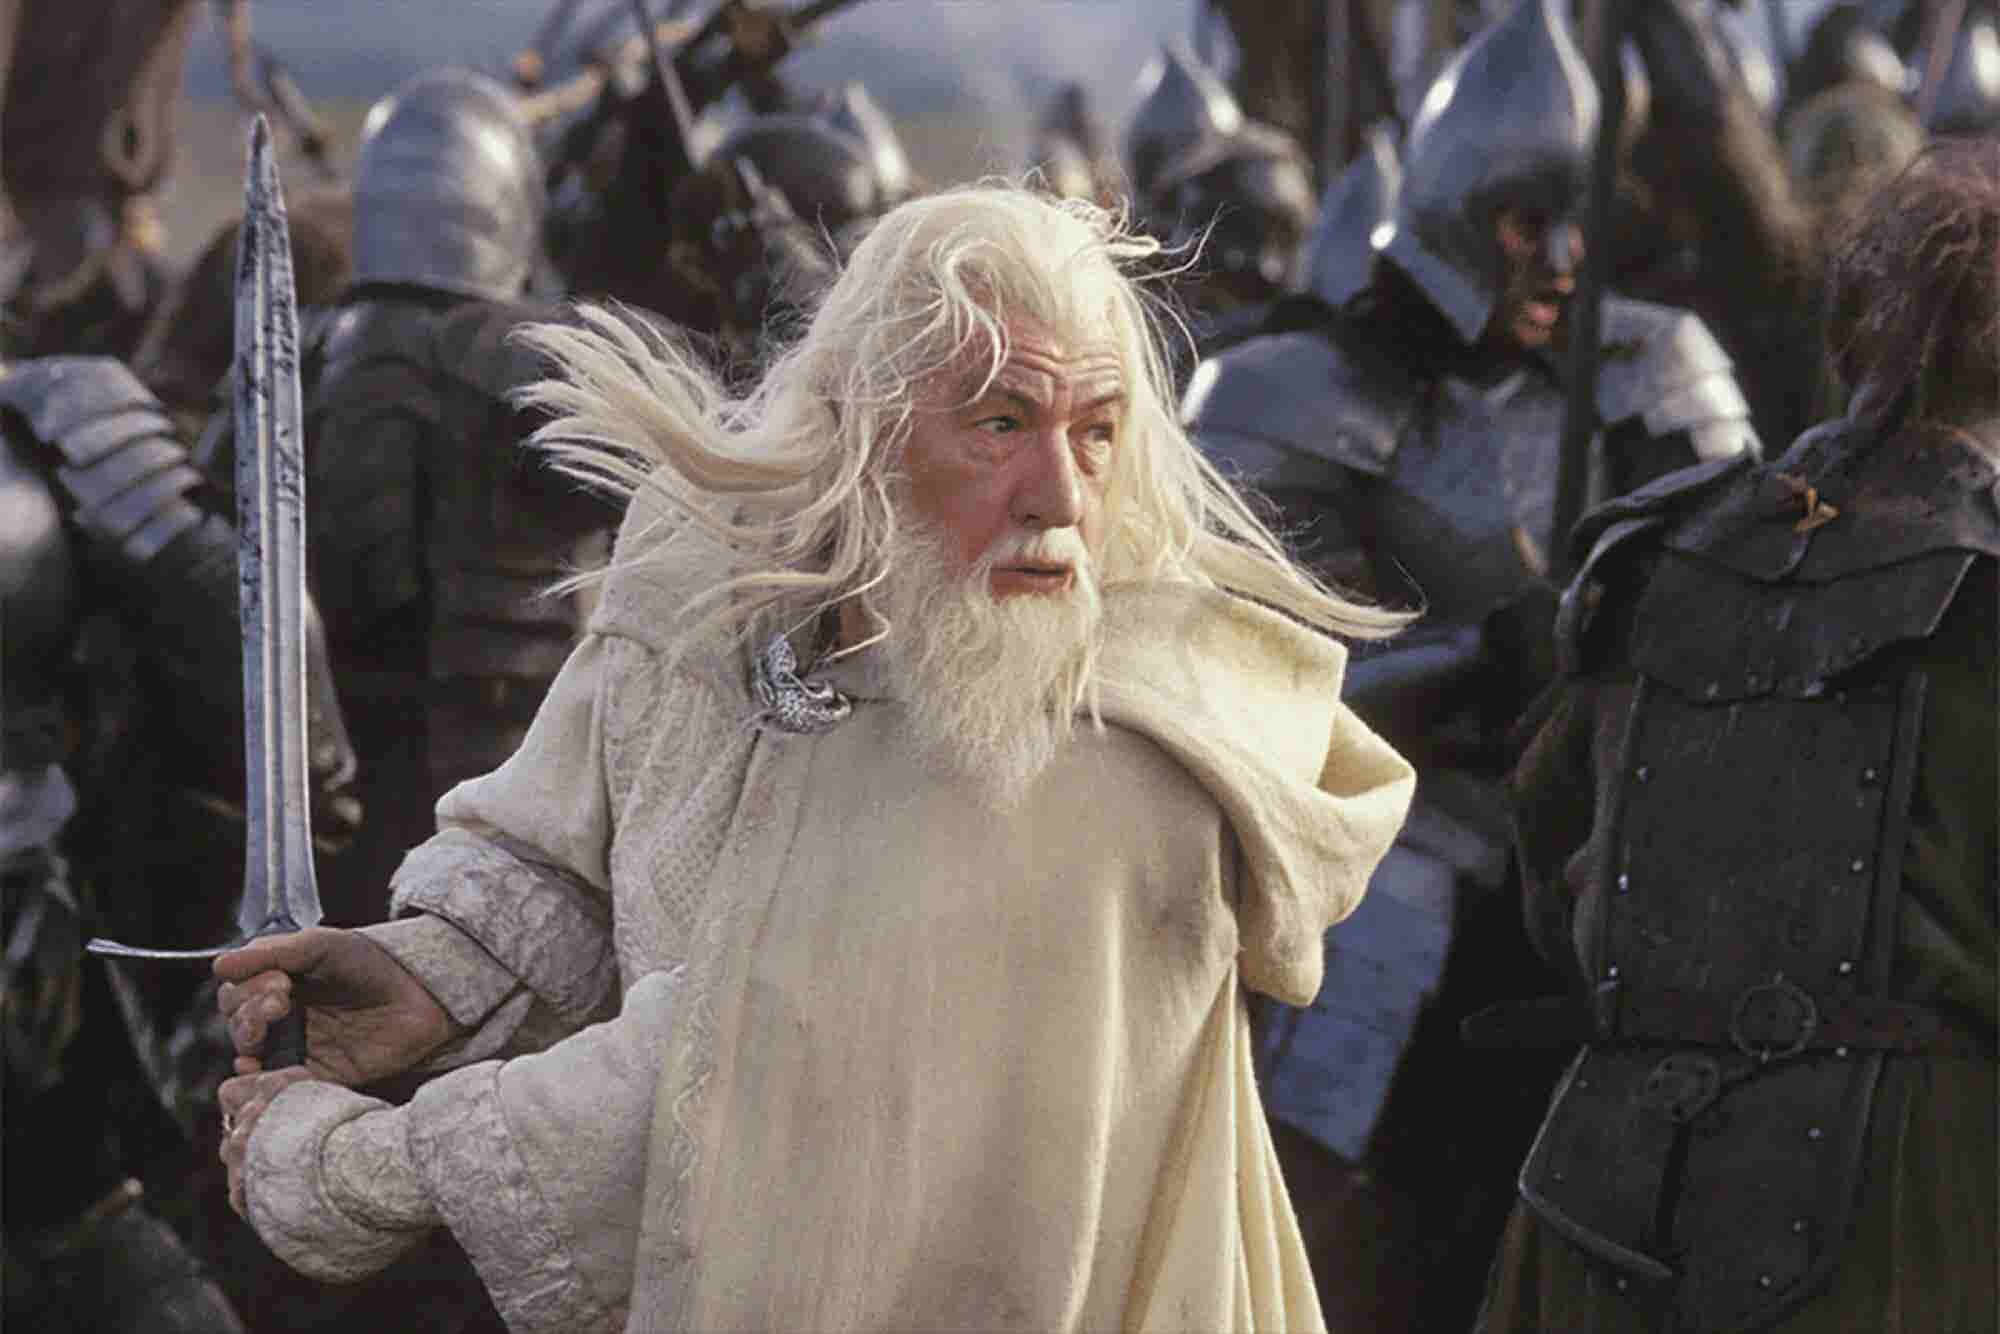 Architects Seek $2.9 Billion to Build 'Lord of the Rings' City